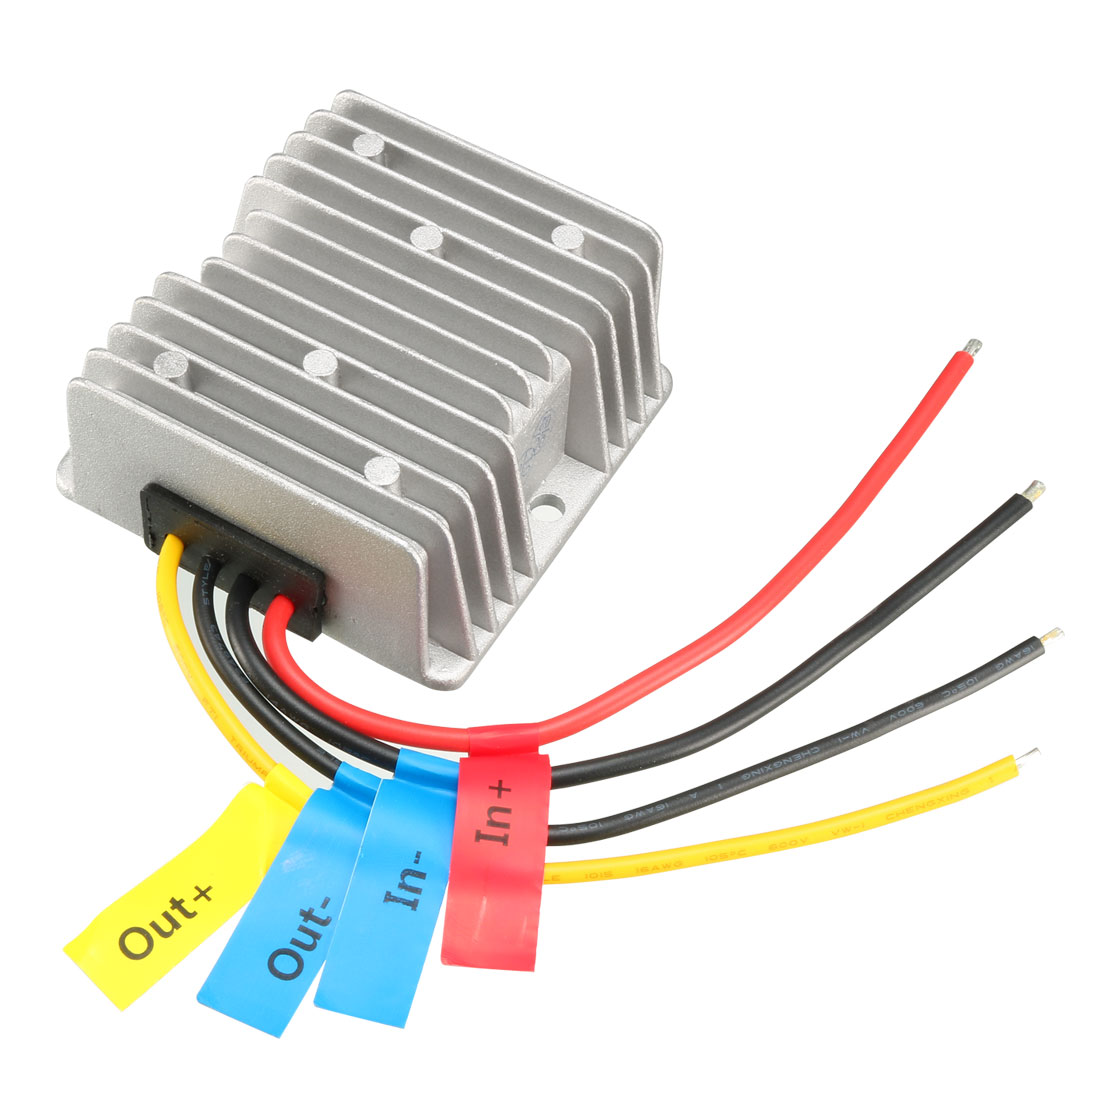 DC 12V(10V~32V) to DC 48V 2.1A 100W Power Converter Regulator Waterproof Electronic Transformer